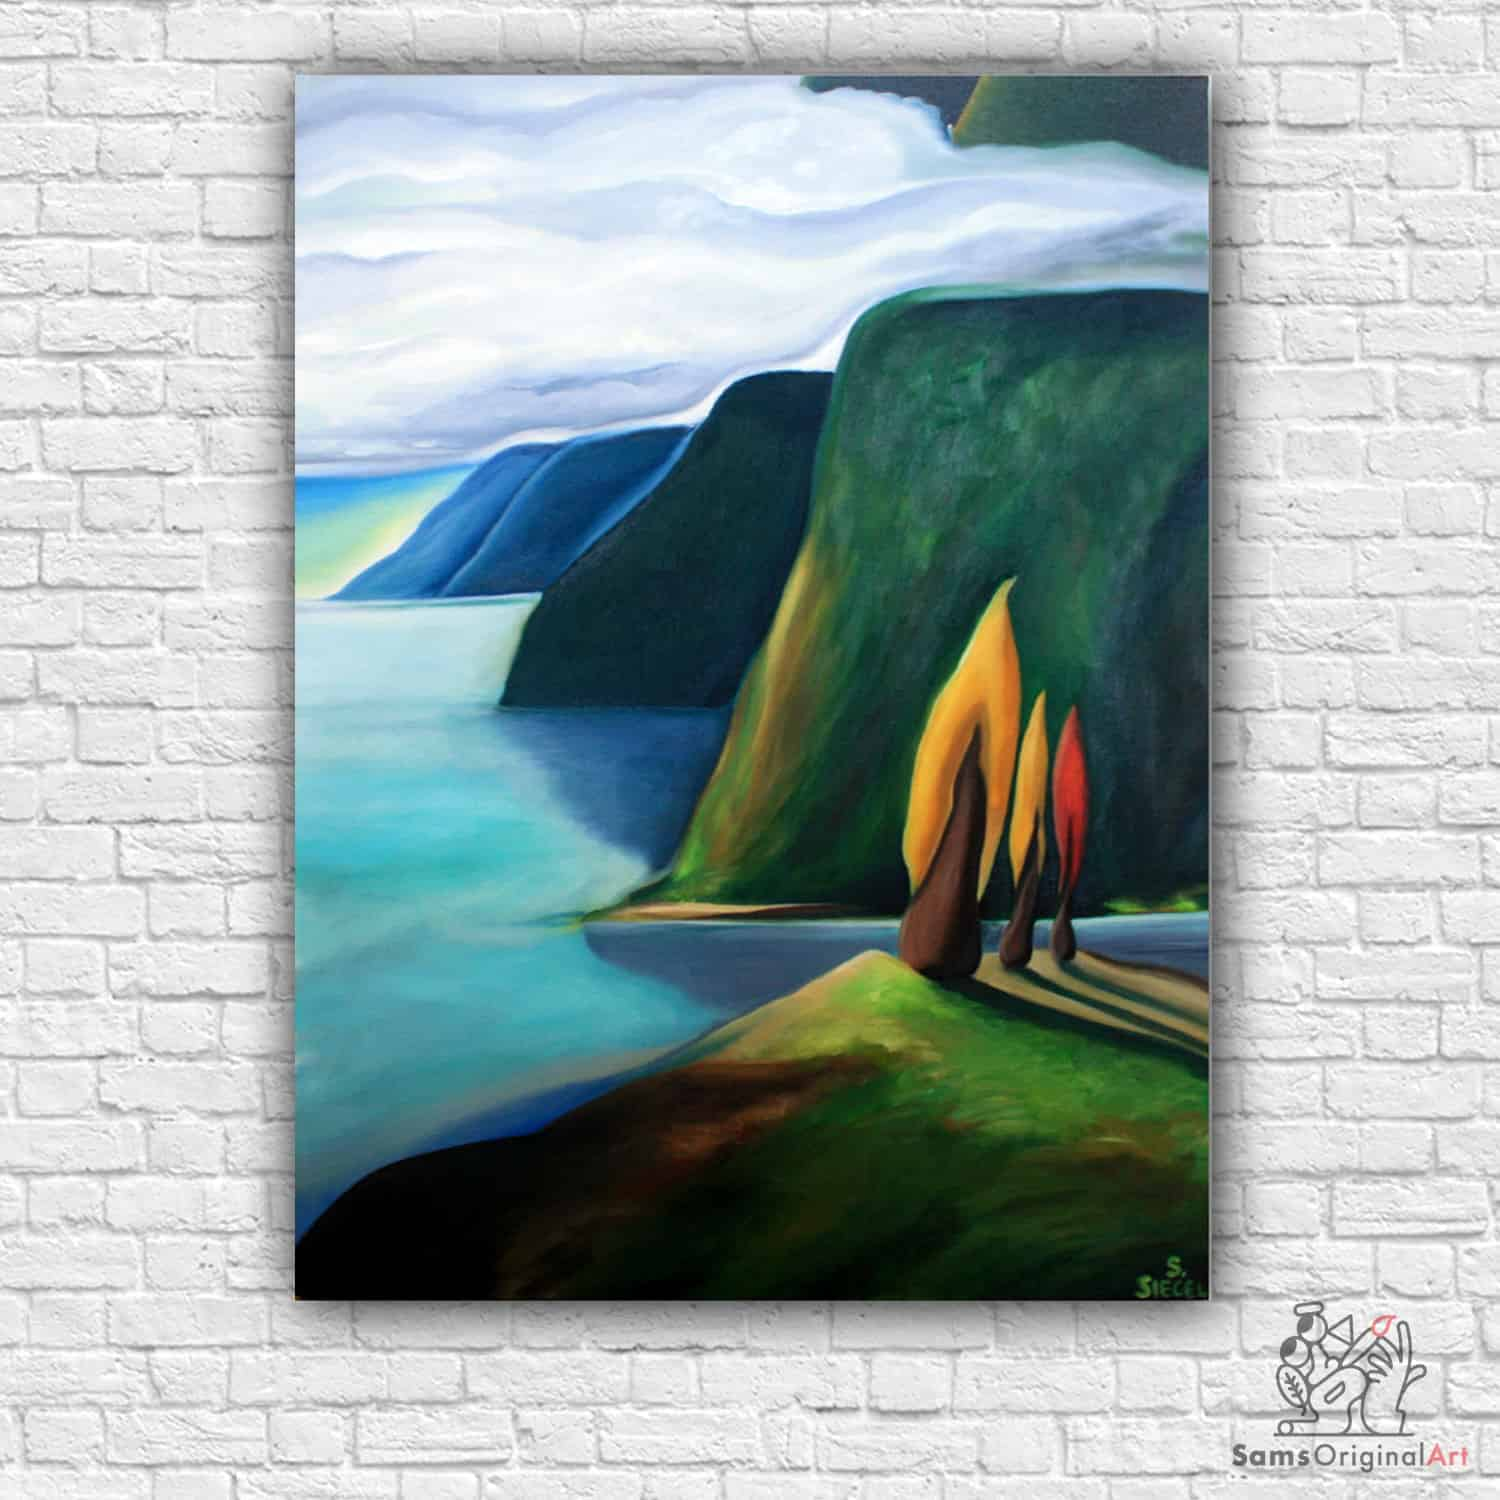 paintings of howe sound